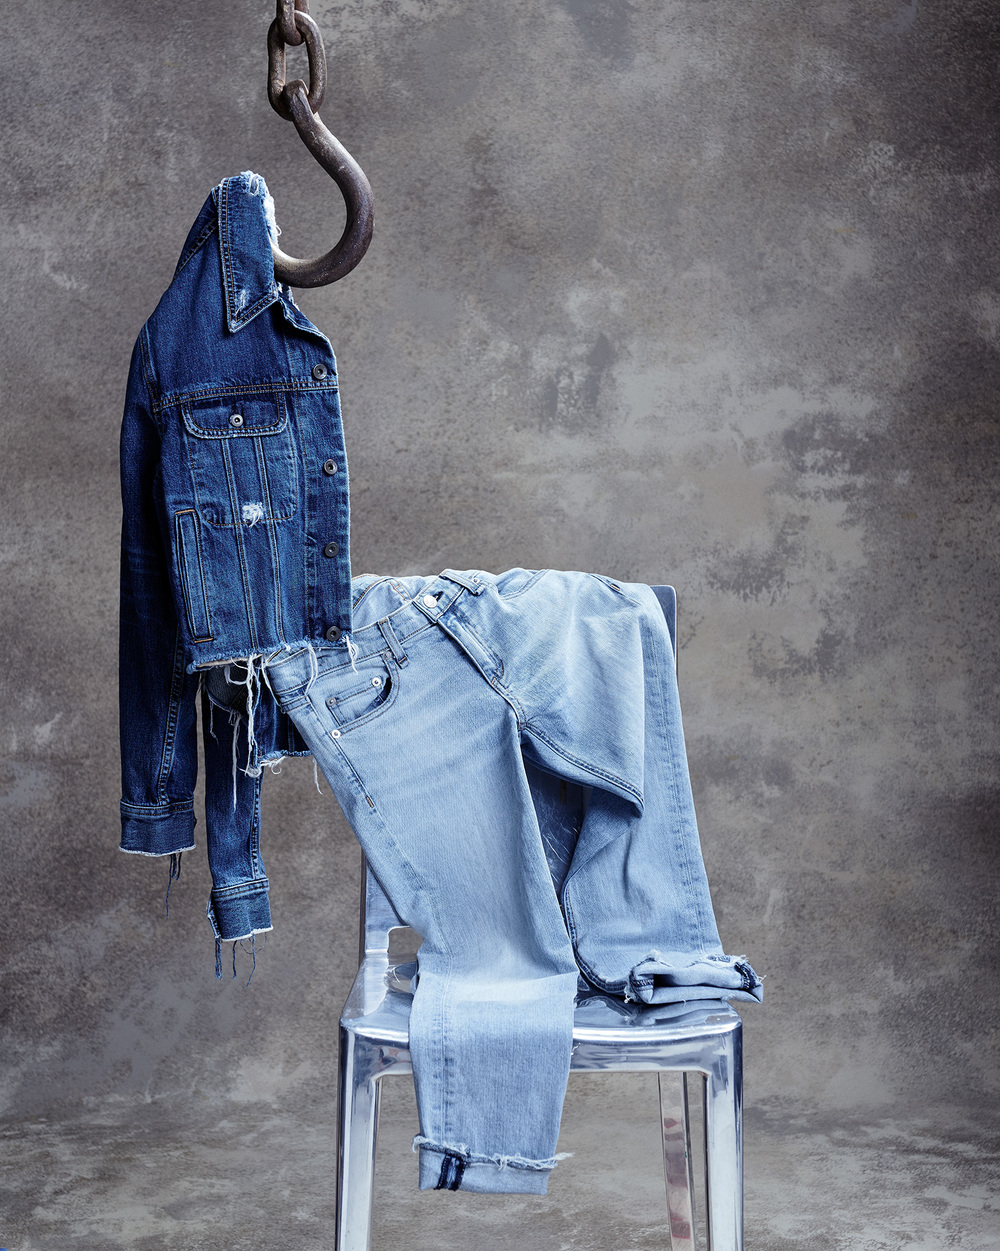 SAKS_DENIM_20150121_STILLS_LOOK_03_1196.jpg